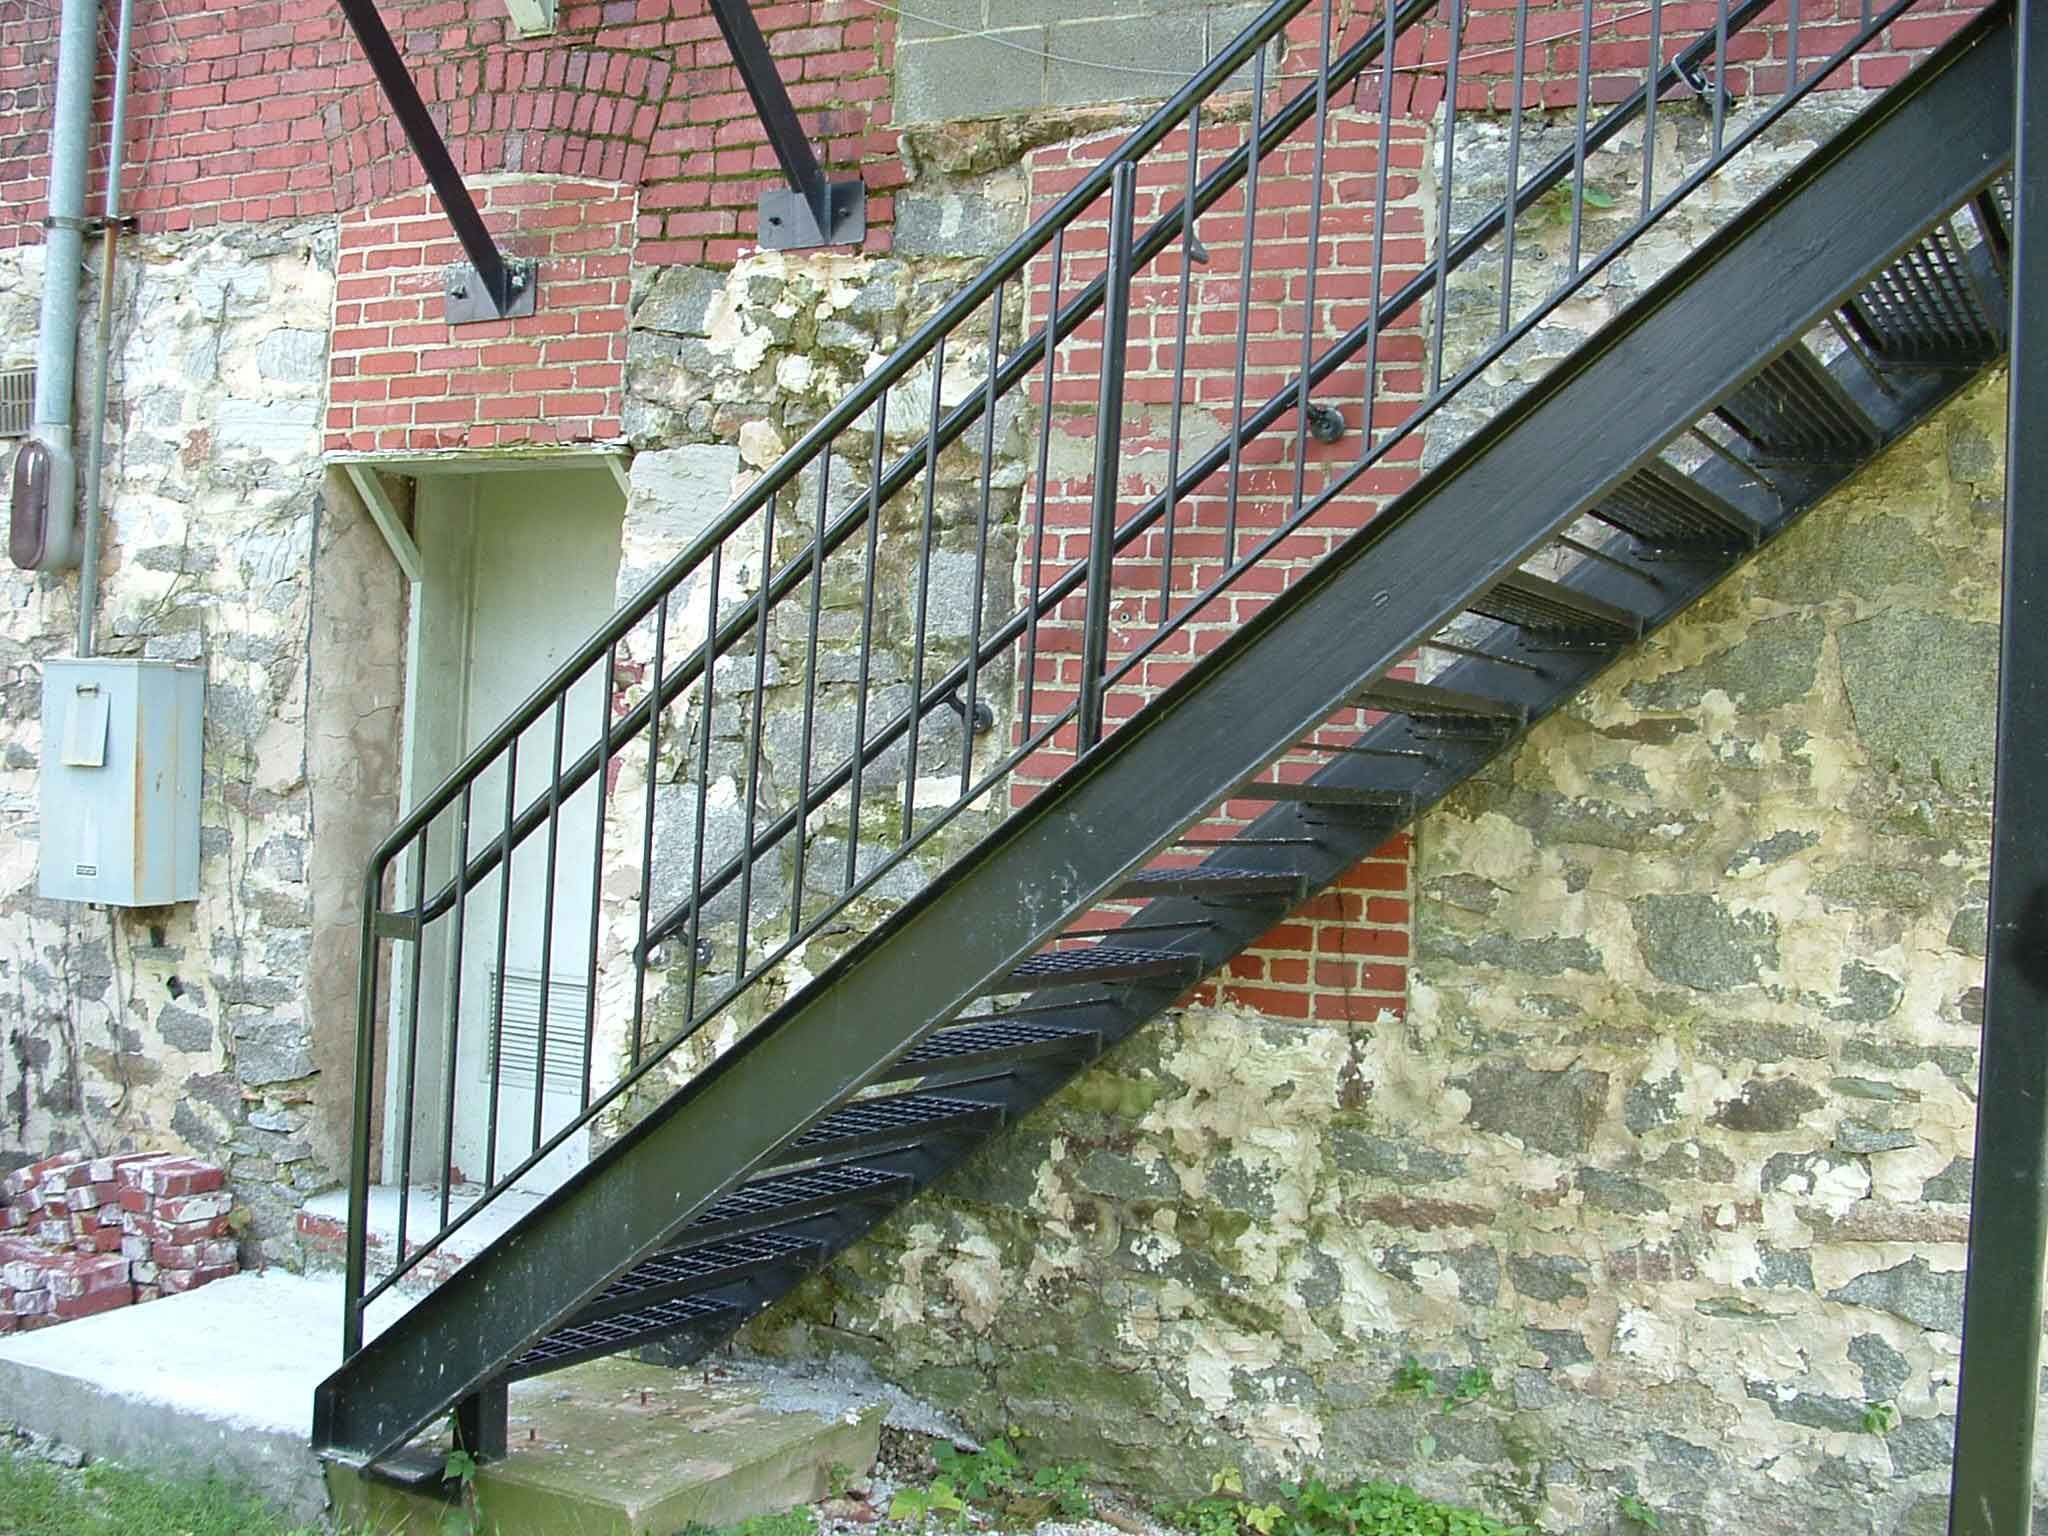 Outside Metal Staircase Cute Outside Metal Staircase – Stair | Outdoor Iron Staircase Designs | Round | Home Stair Design | Backyard | Spiral Staircase | Eye Catching